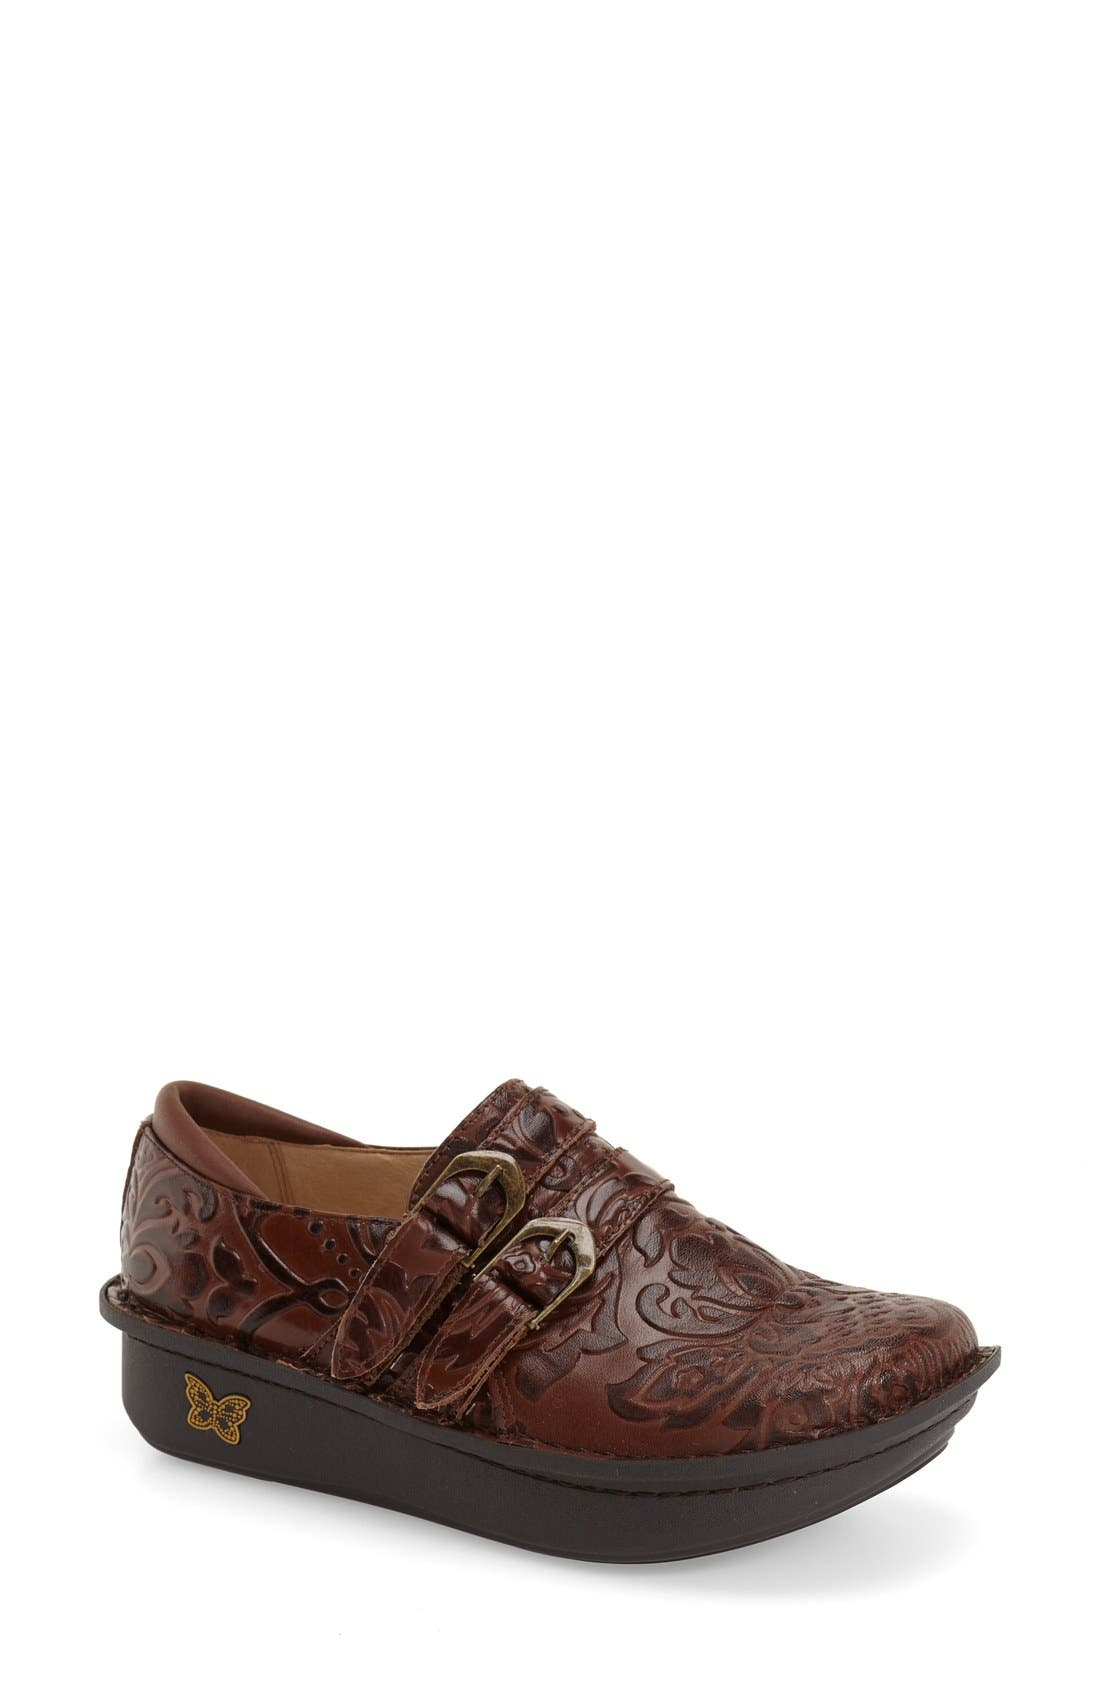 'Alli' Loafer,                             Main thumbnail 8, color,